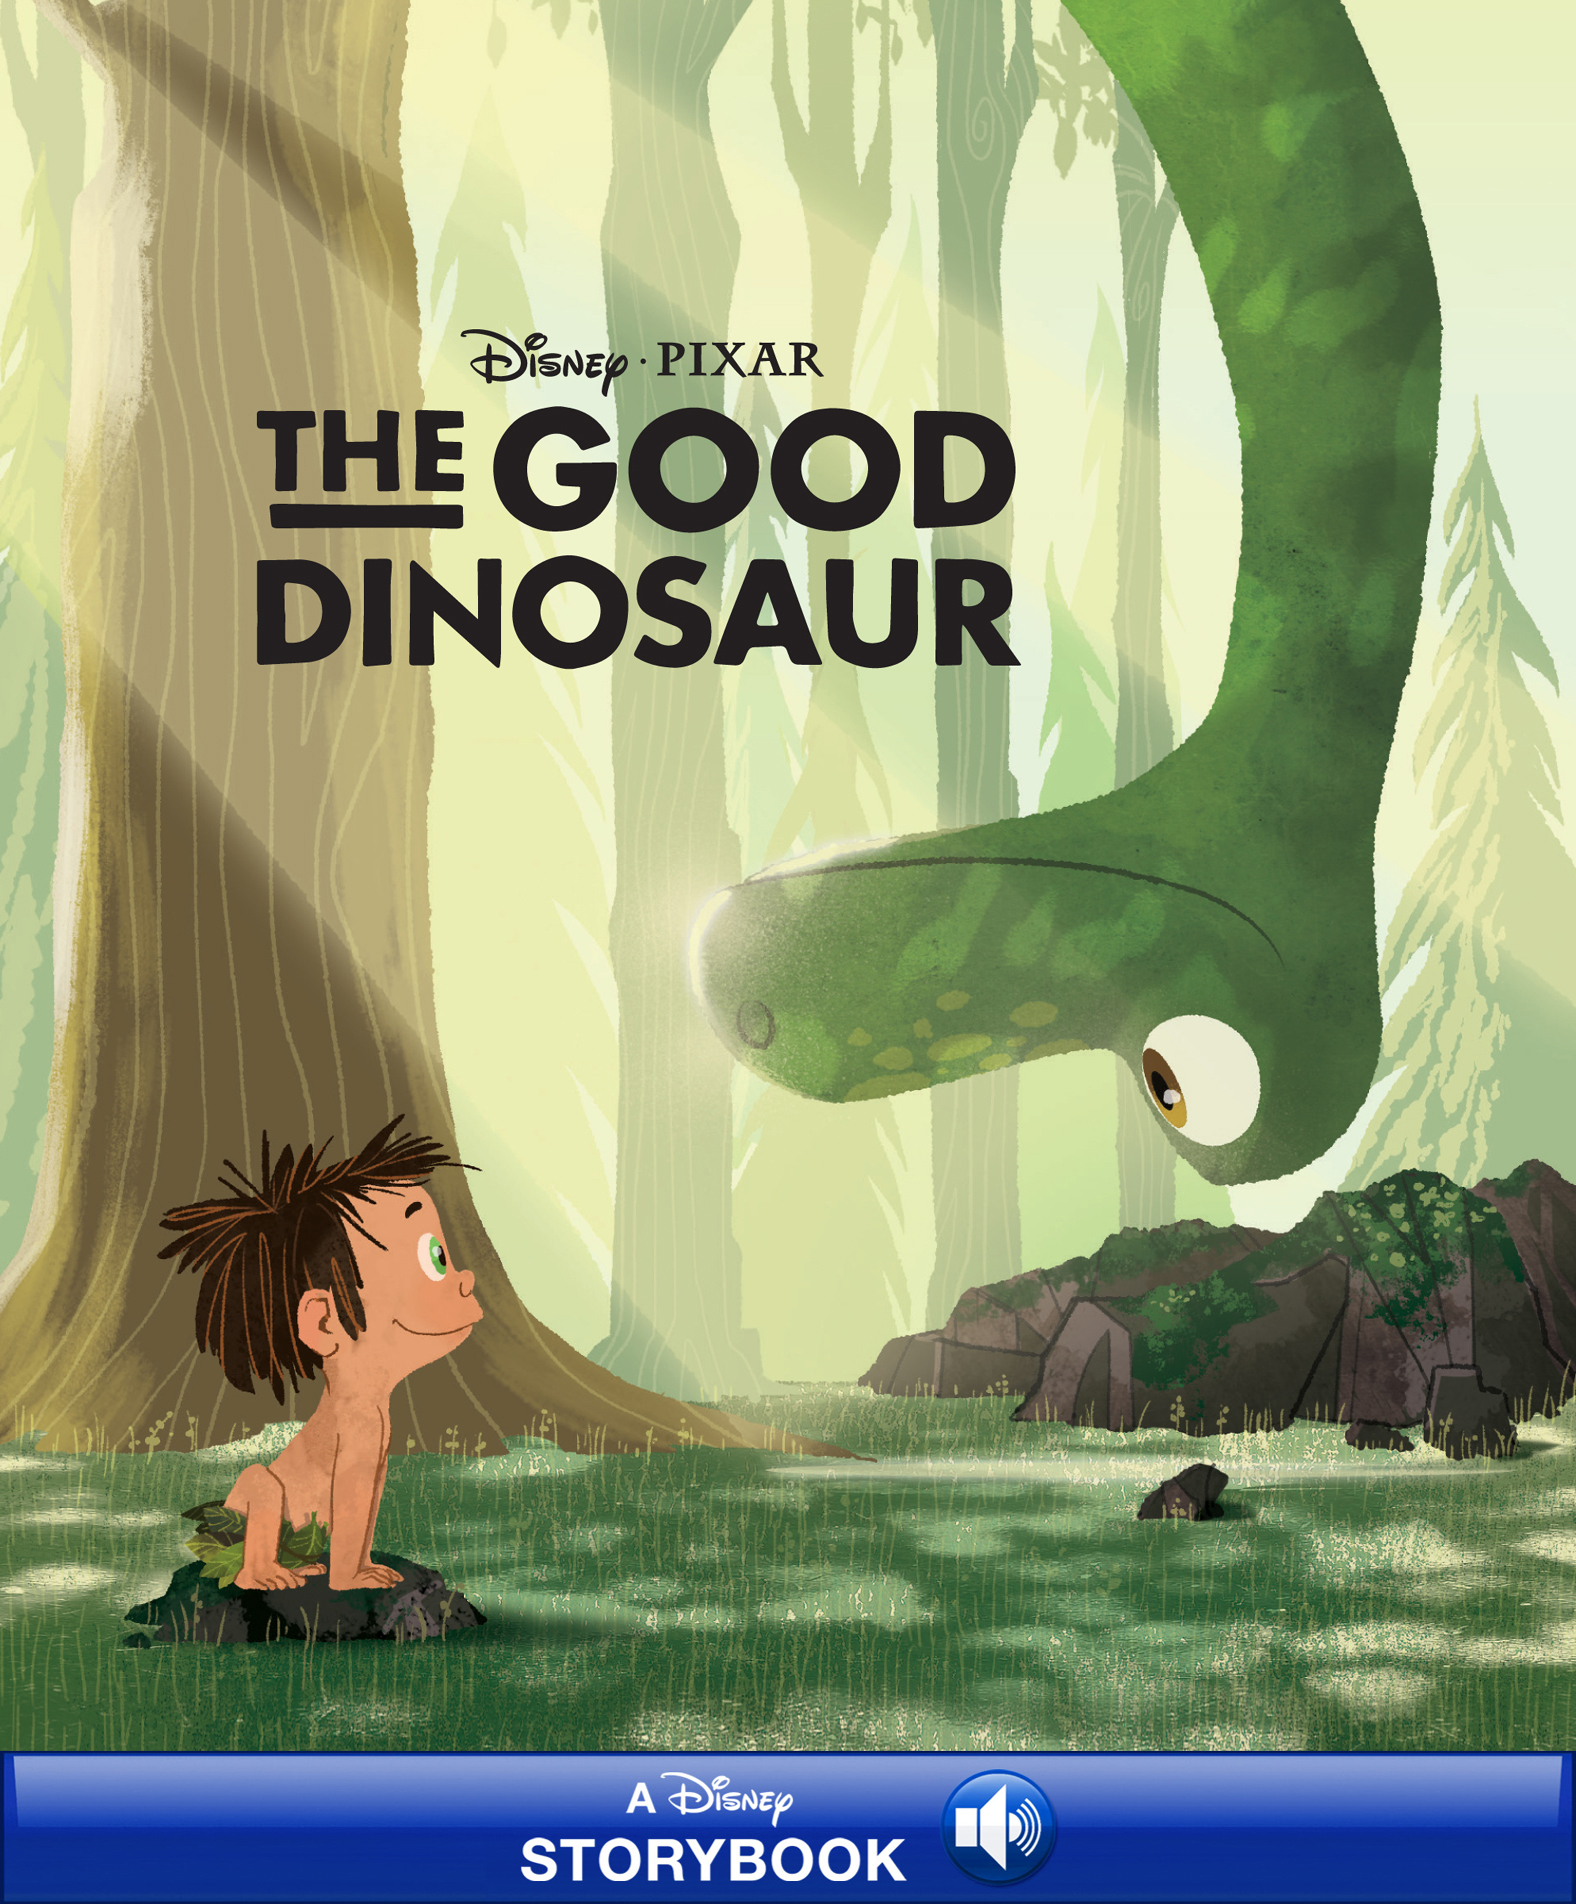 Disney Classic Stories: The Good Dinosaur A Disney Storybook with Audio